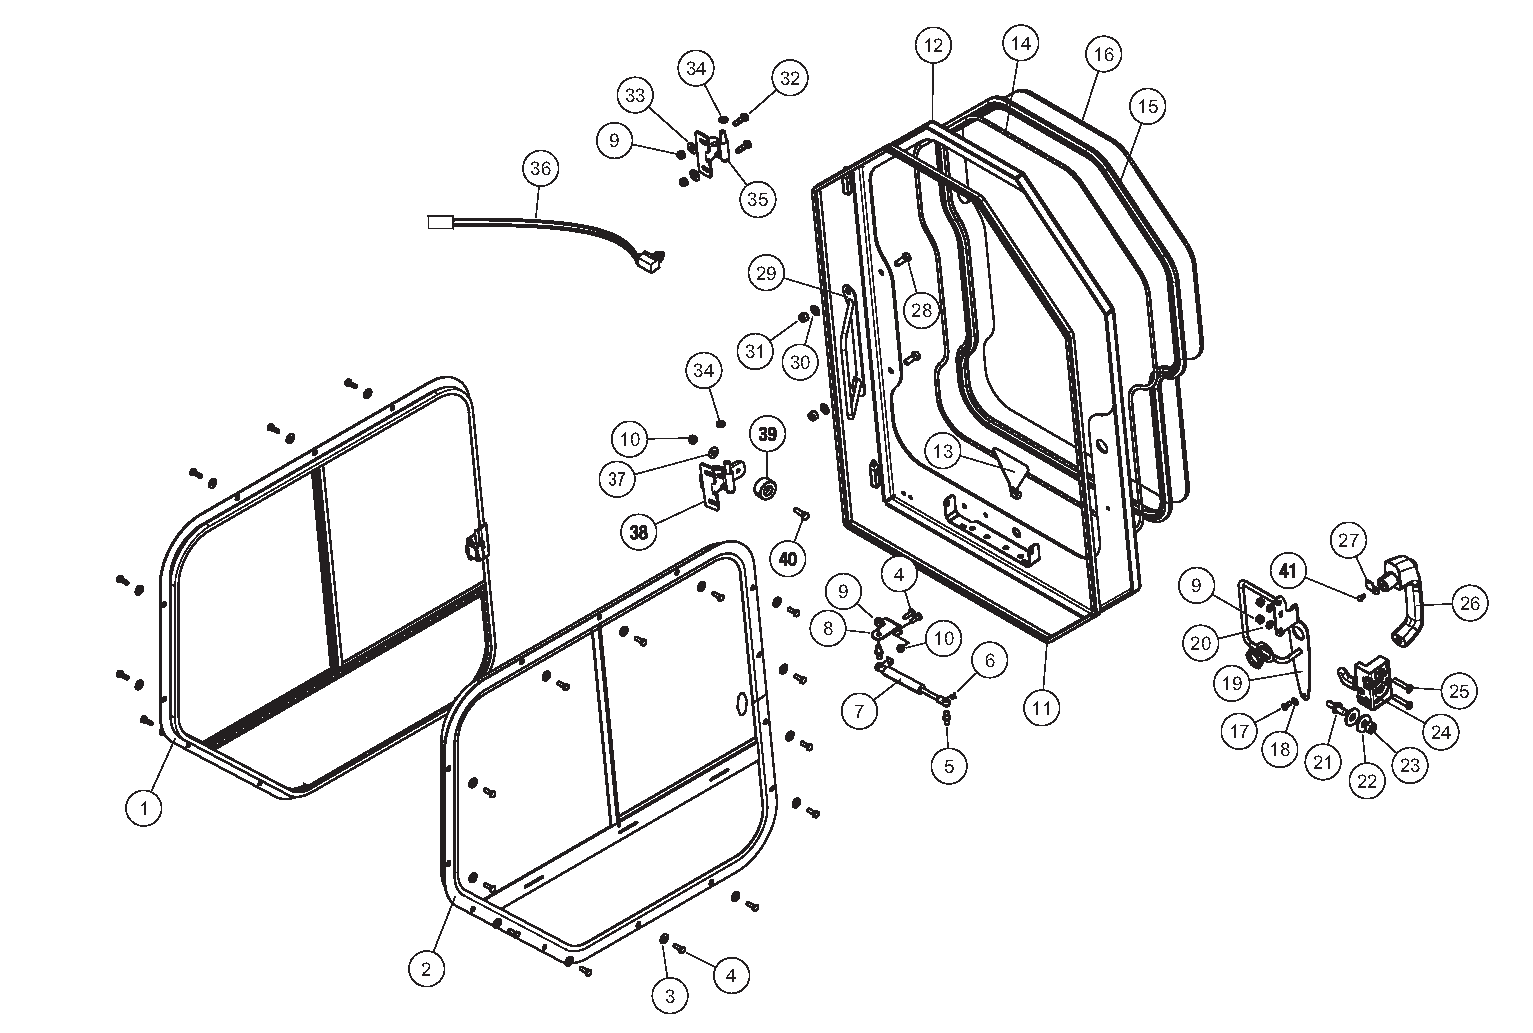 Diagram 07-A Cab Doors And Windows - ROPS